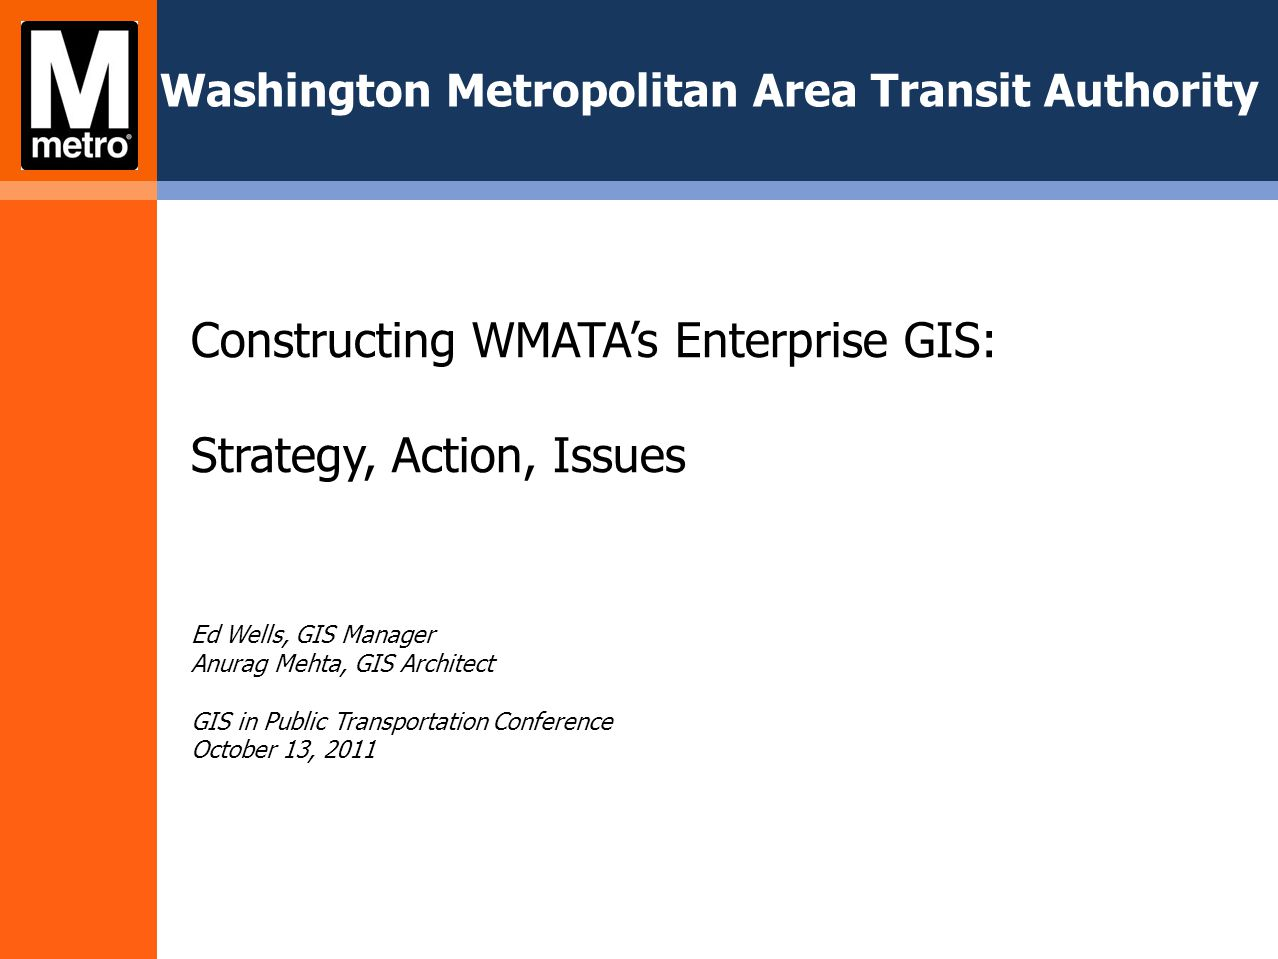 TG 7: User Support Goal: Support GIS use in WMATA departments via tech support, creation of map publications, metadata, and training courses.